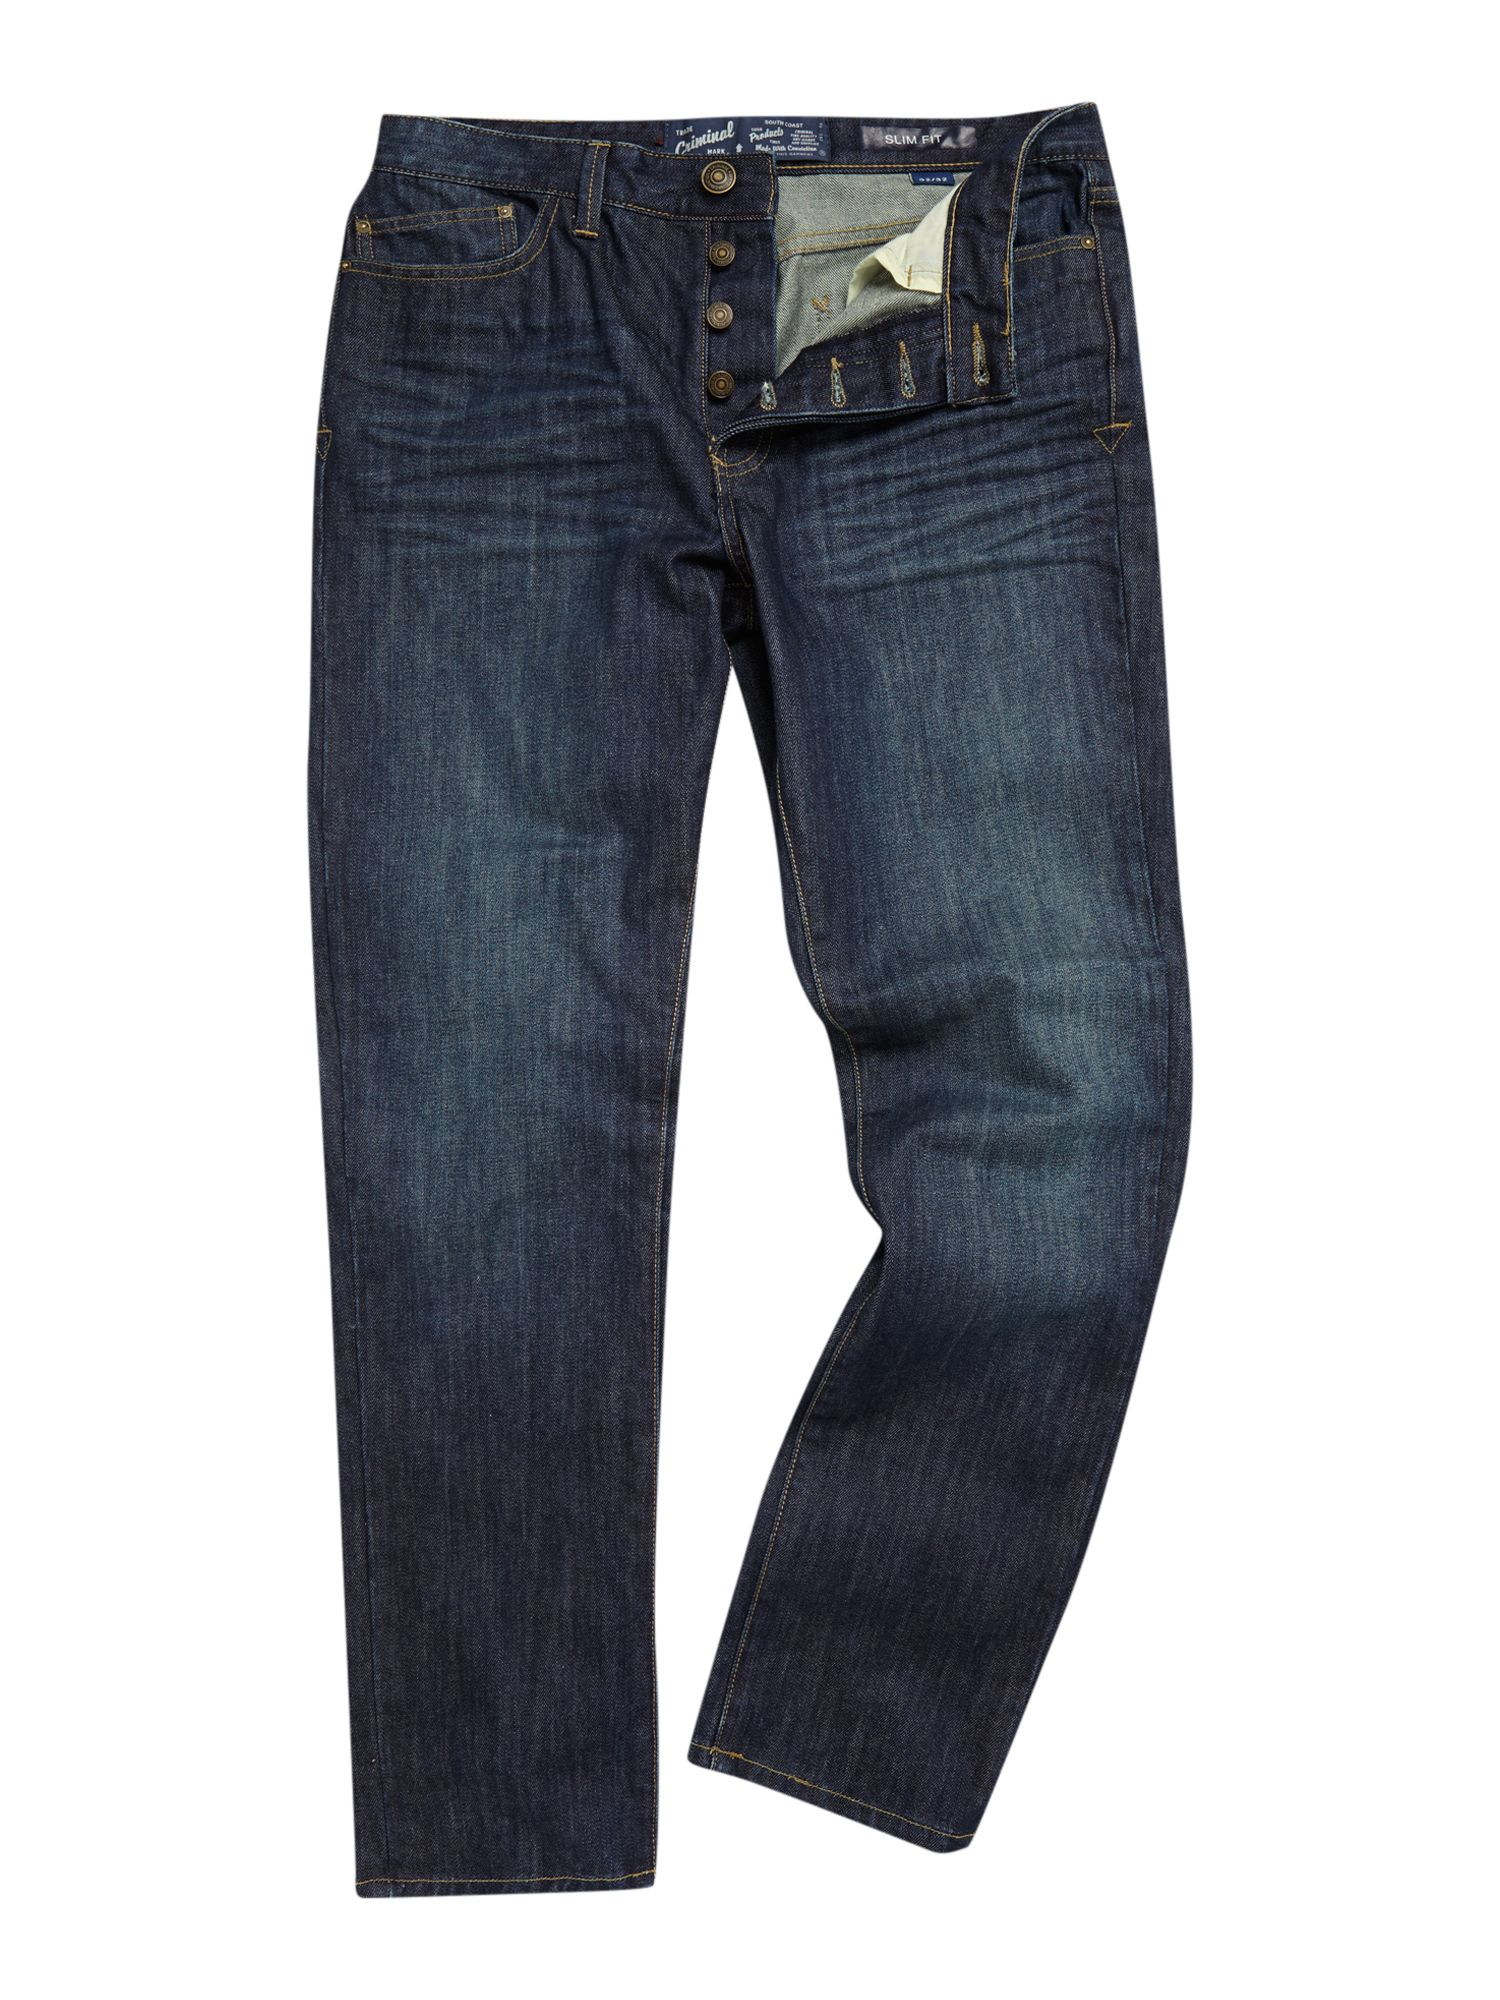 Green tint washed slim fit jeans